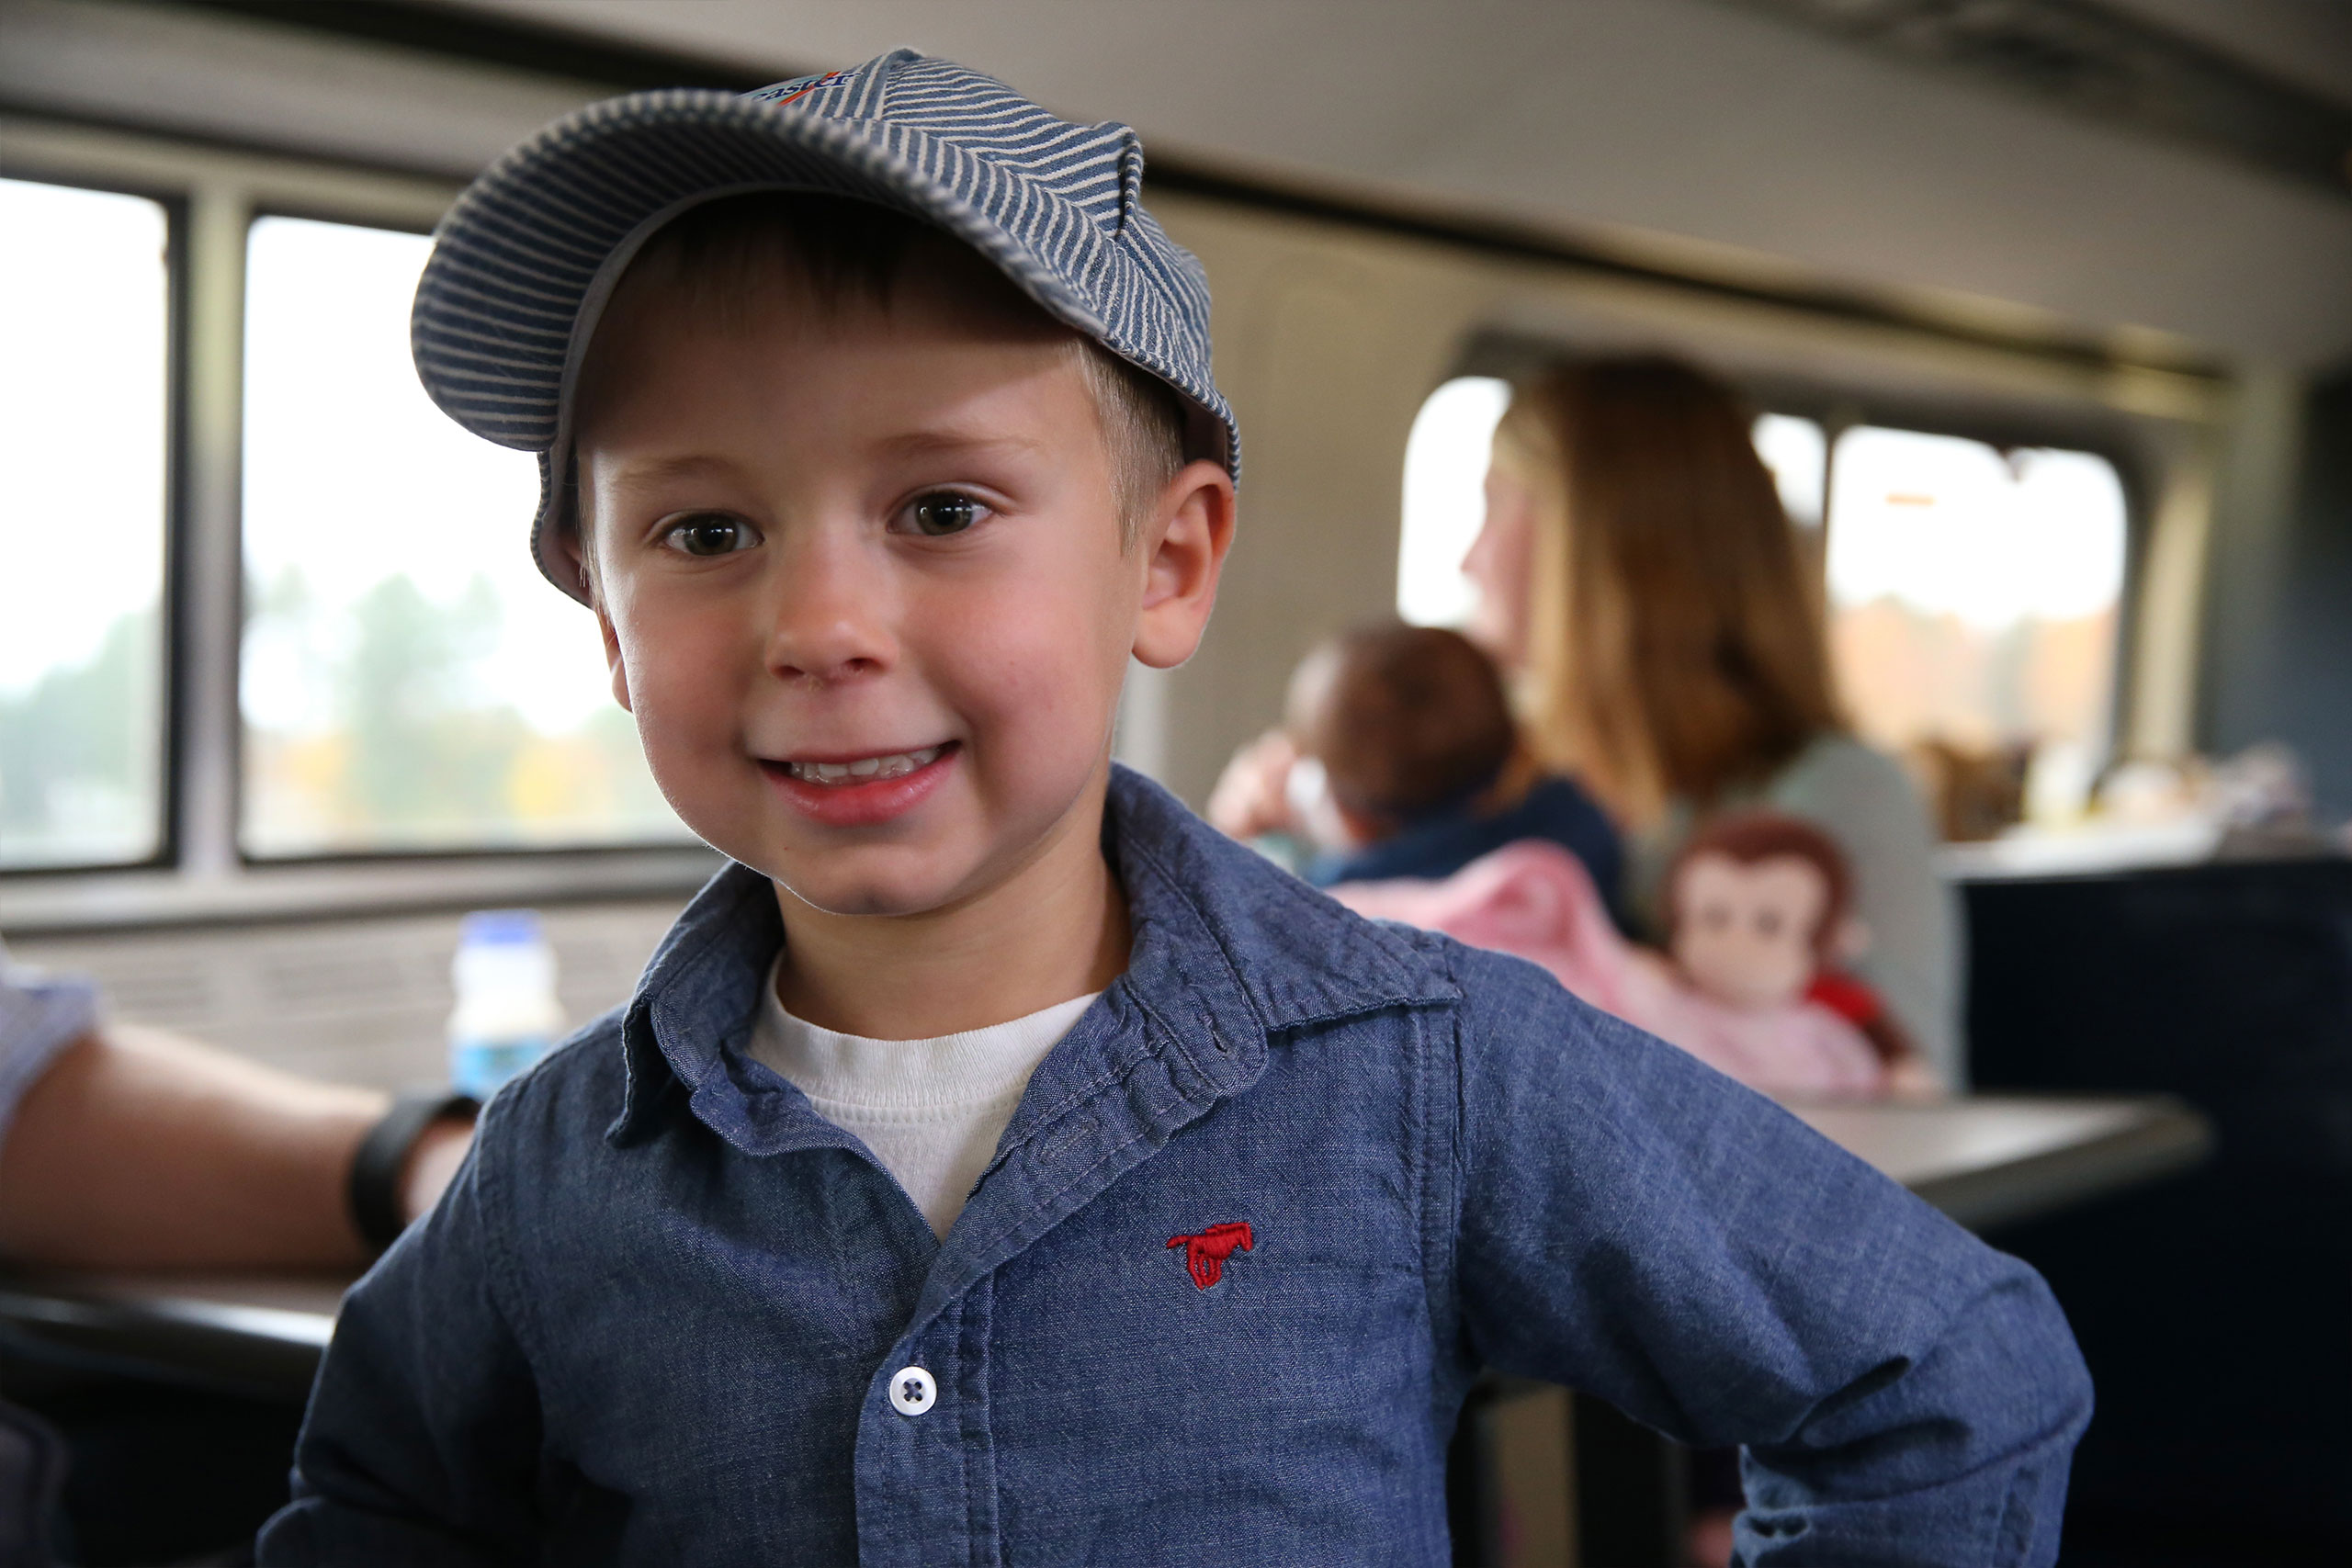 Kid smiles while riding train